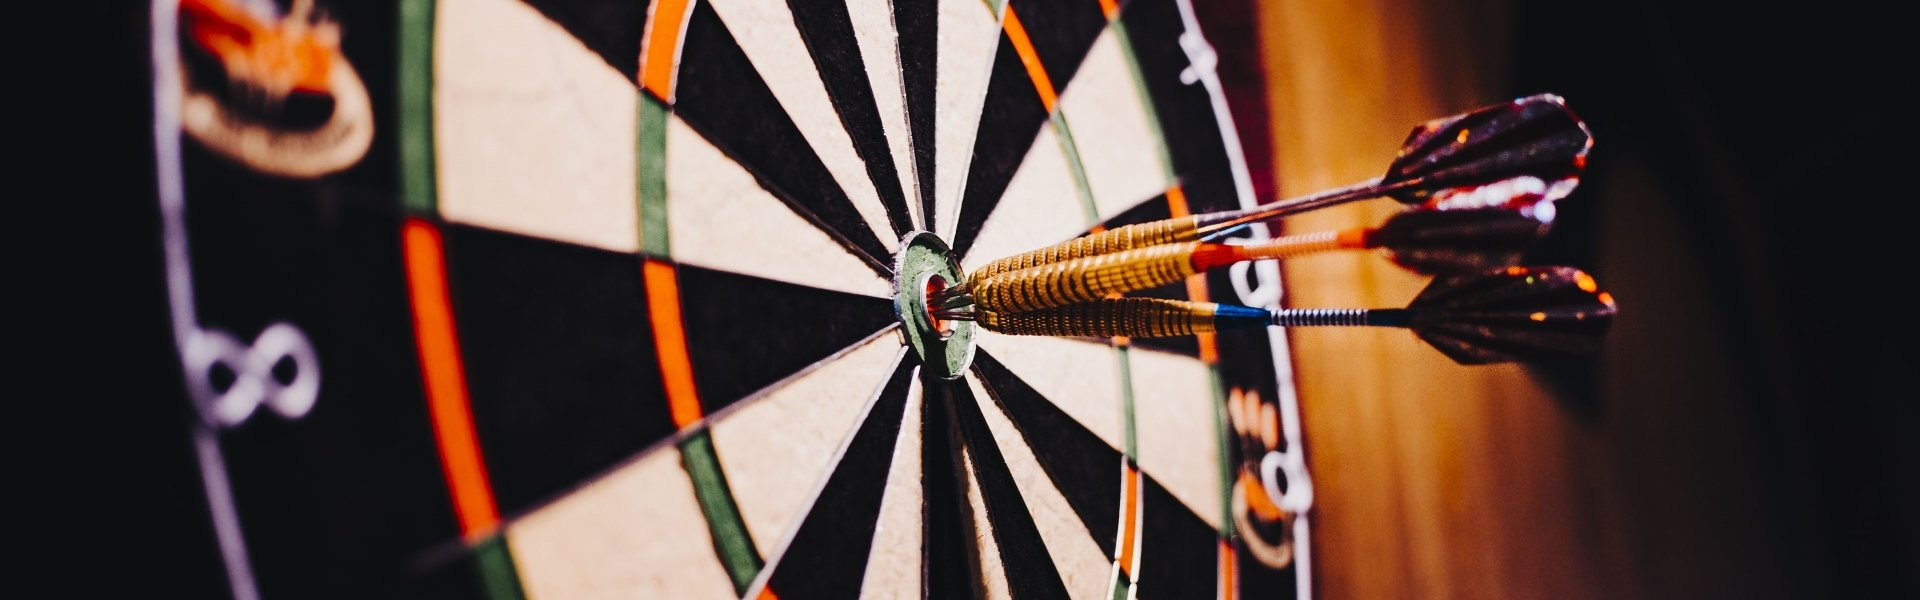 Best Bristle Dartboards Reviewed in Detail